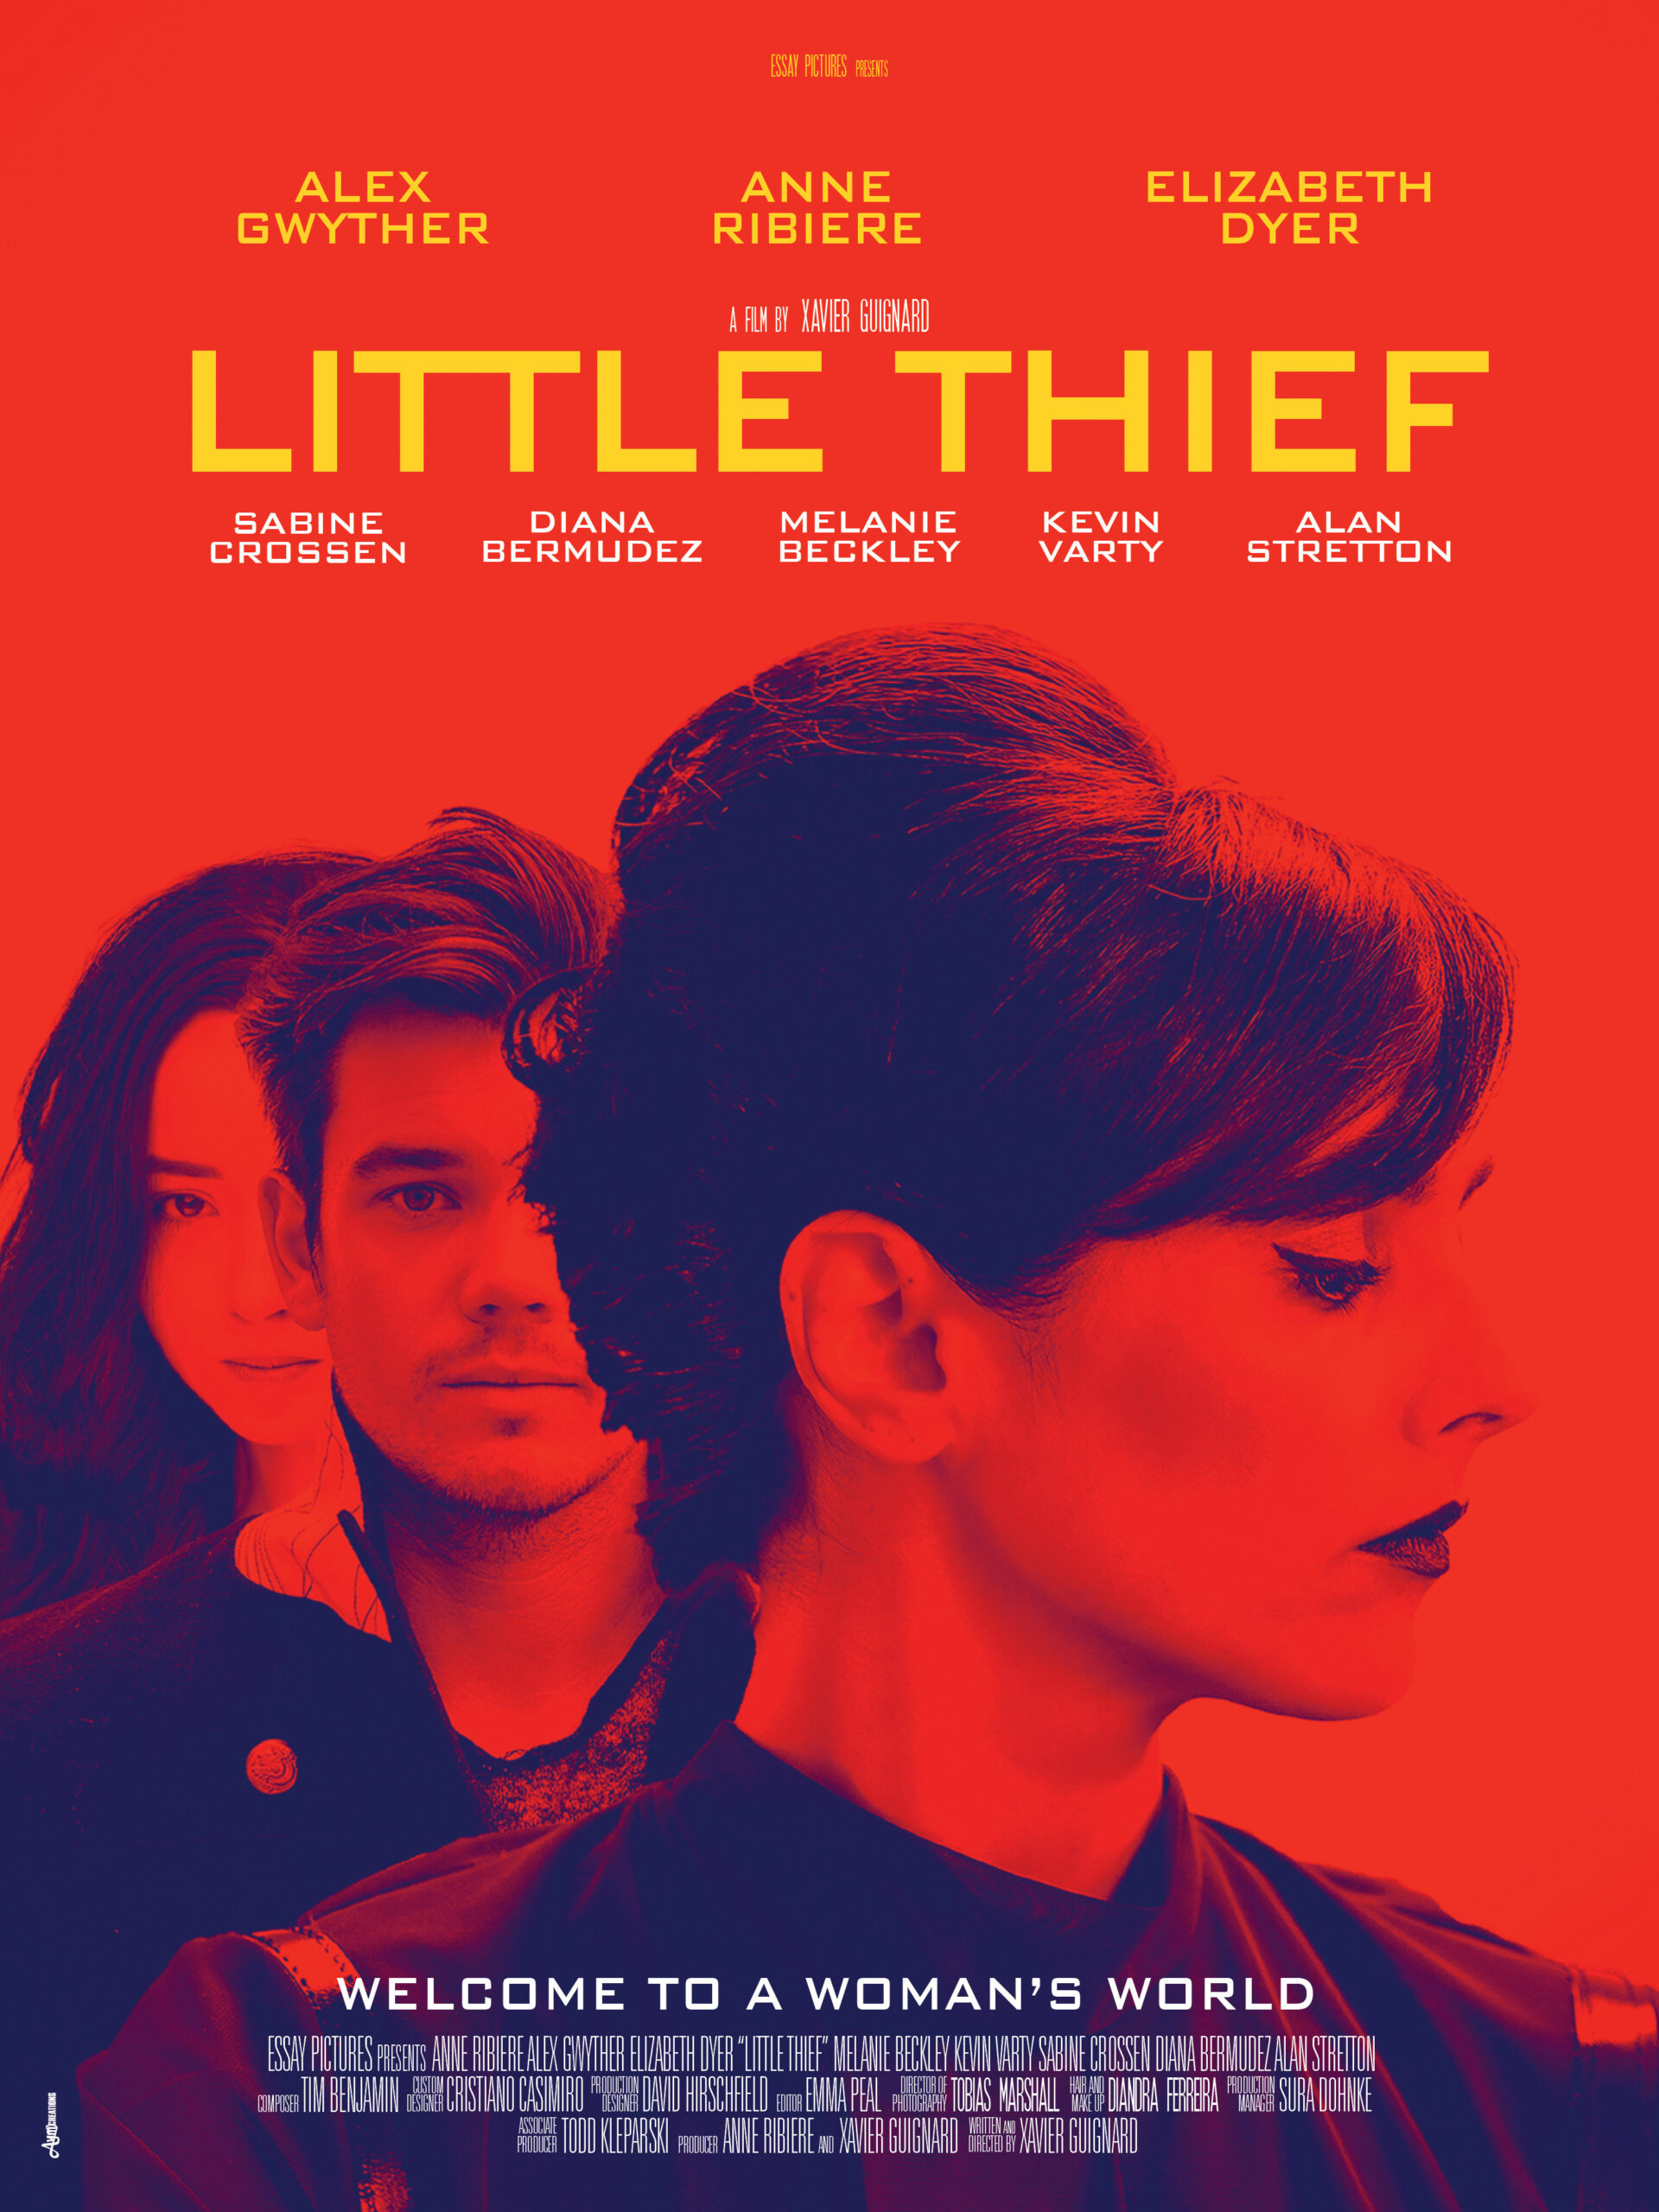 Little Thief - Film by Essay Pictures and directed by Xavier Guignard